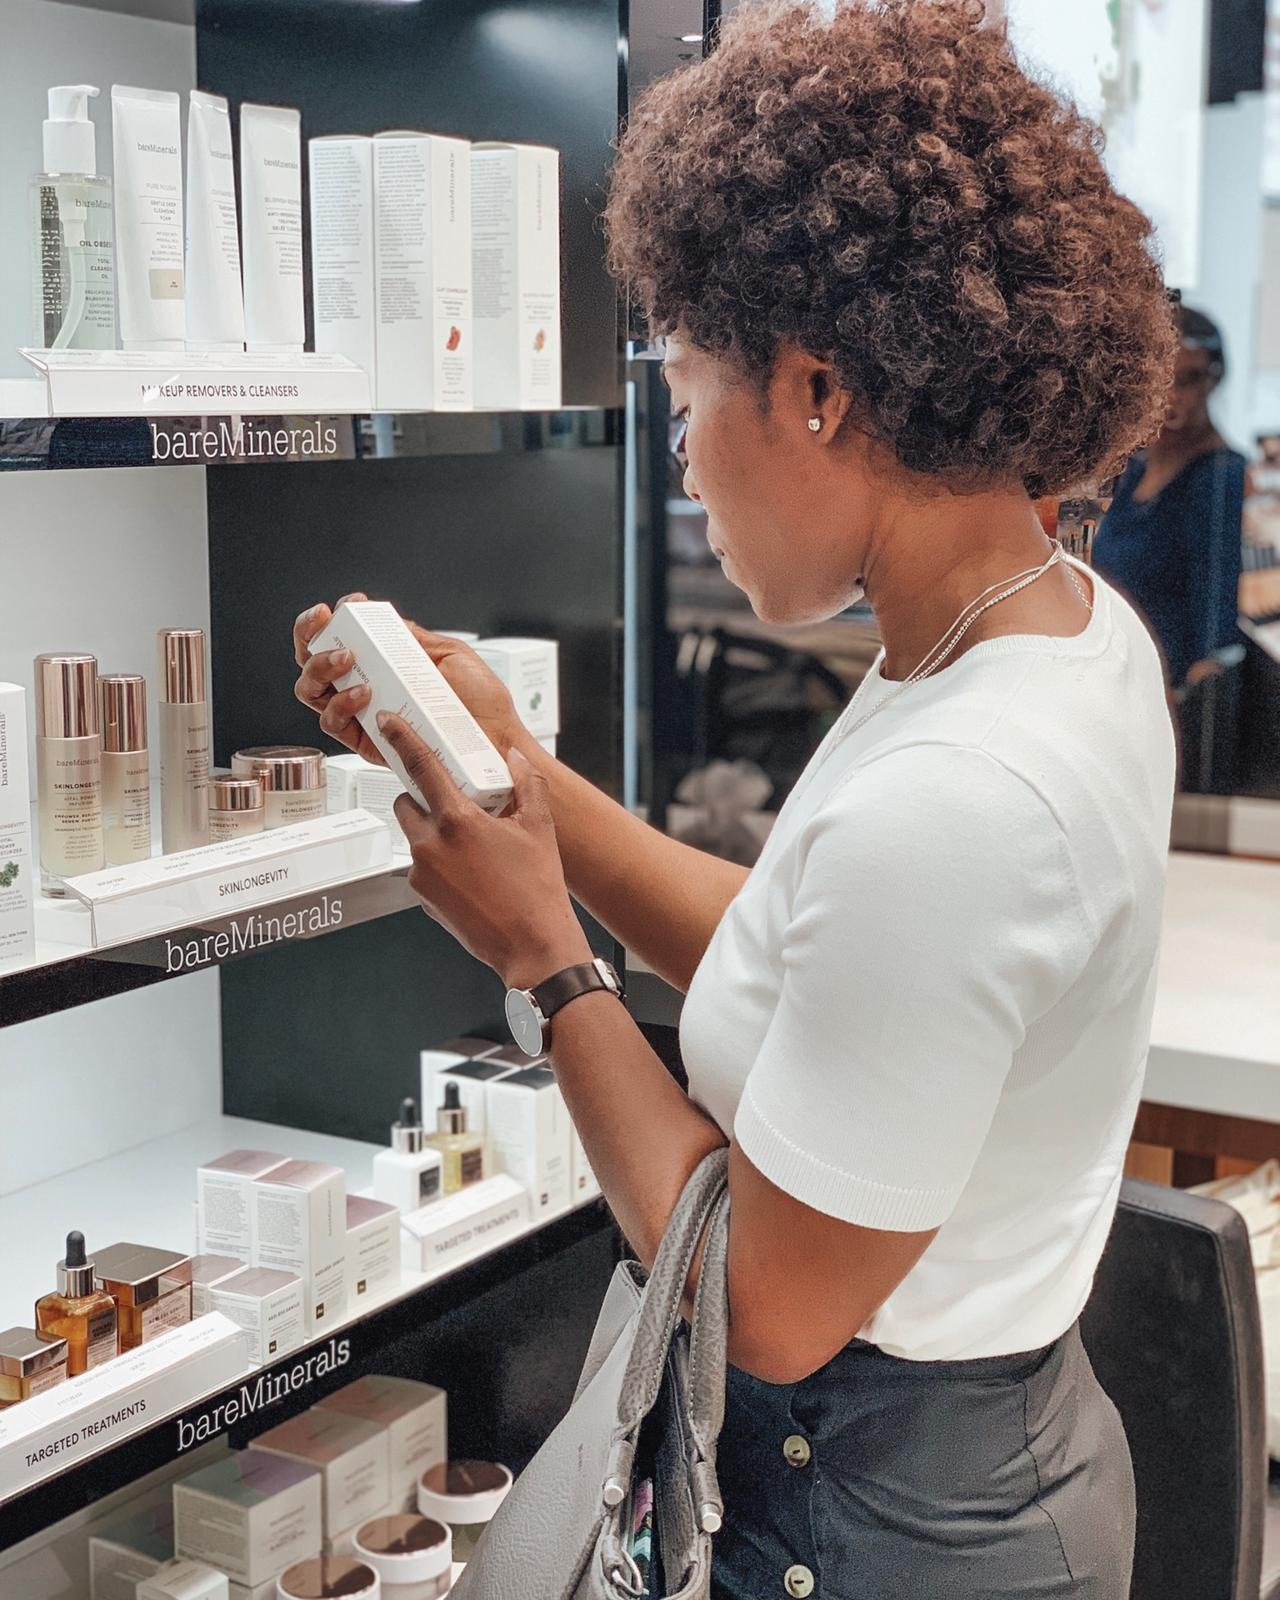 11 Ingredients You Should  Avoid in Your Skin & Hair Care Products